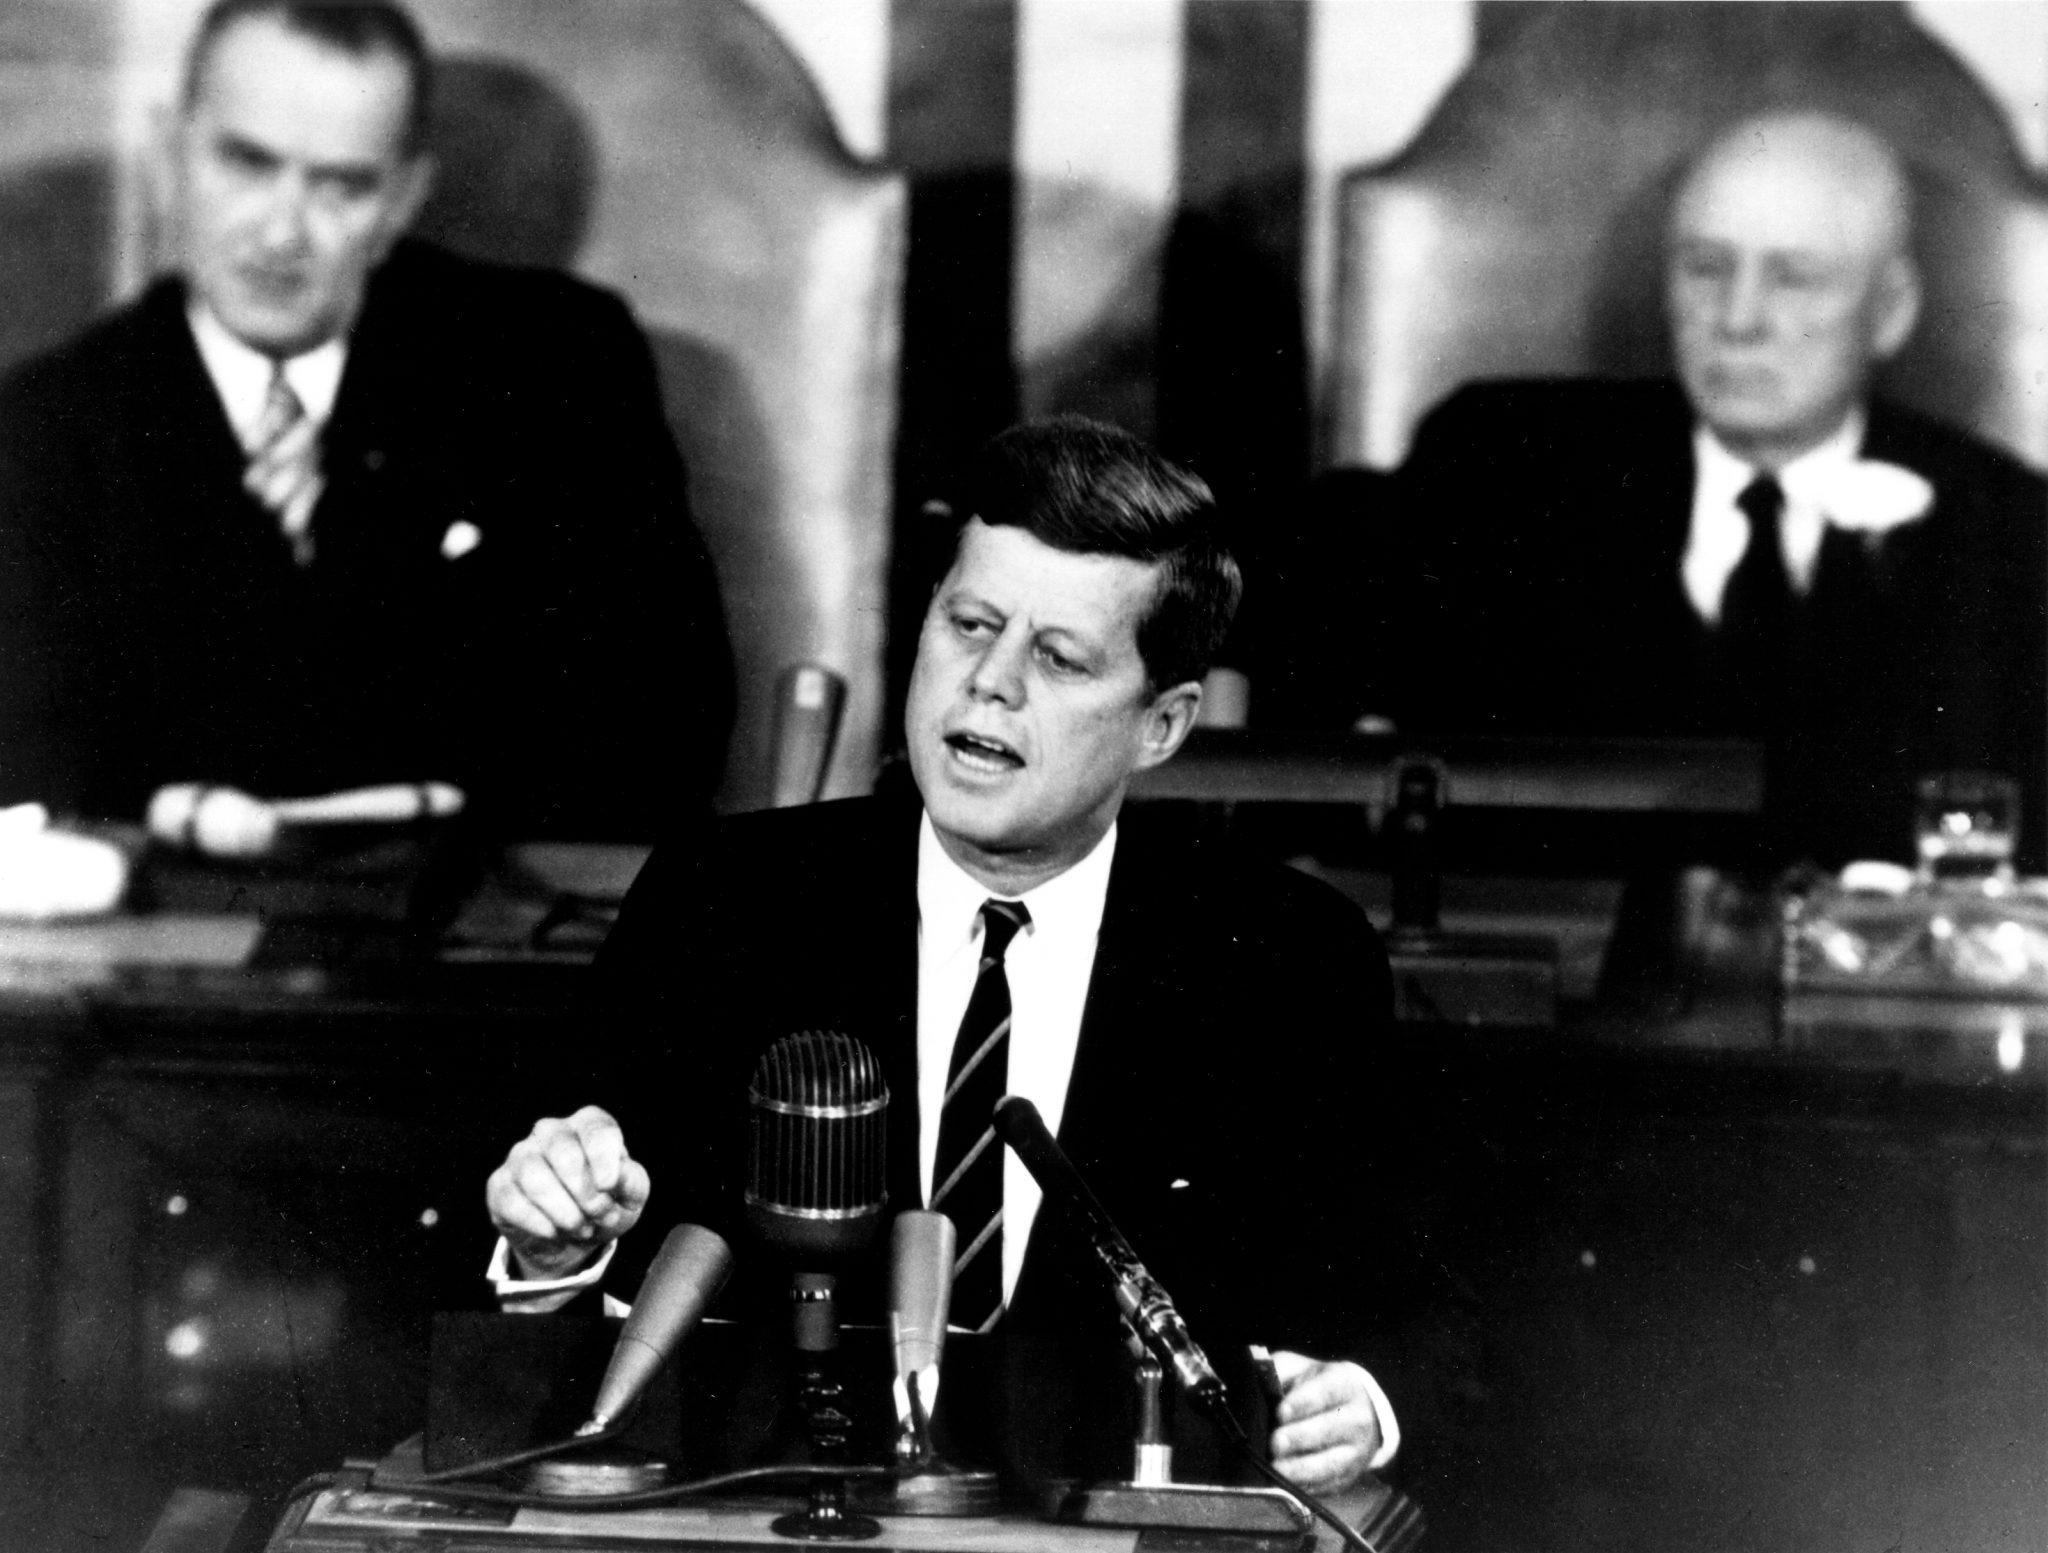 25th May 1961: Kennedy announces plan for manned moon landing | HistoryPod